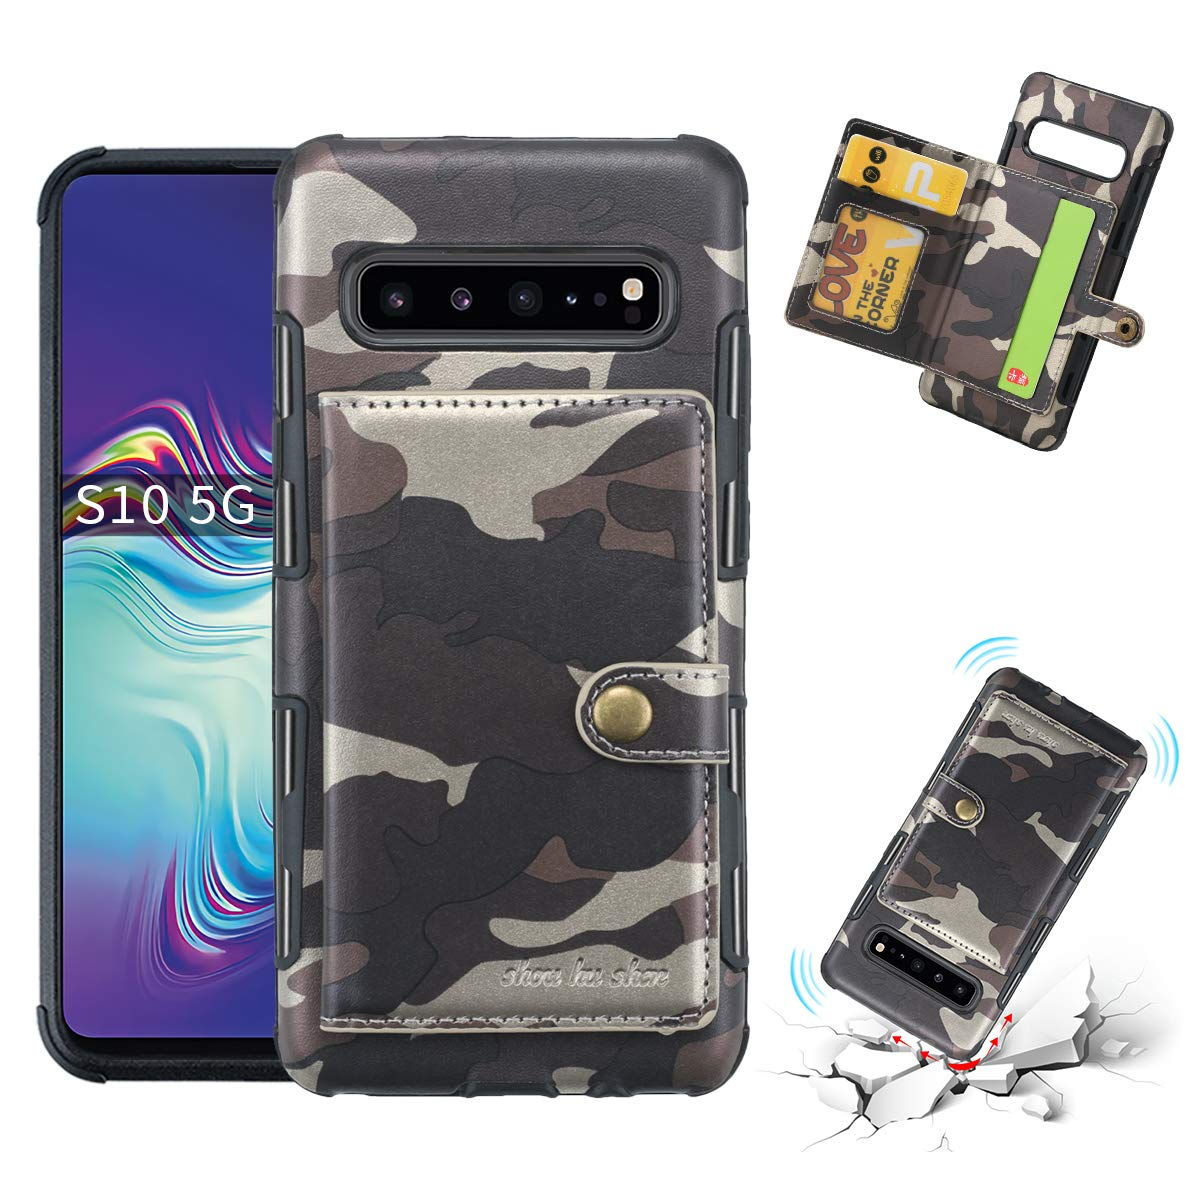 DAMONDY for Galaxy S10 5G Case,Luxury Camo Wallet Purse Card Holders Design Cover Soft Shockproof Bumper Flip Leather Kickstand Magnetic Closure Camouflage Case for Samsung S10 5G 6.7 inch-Coffee